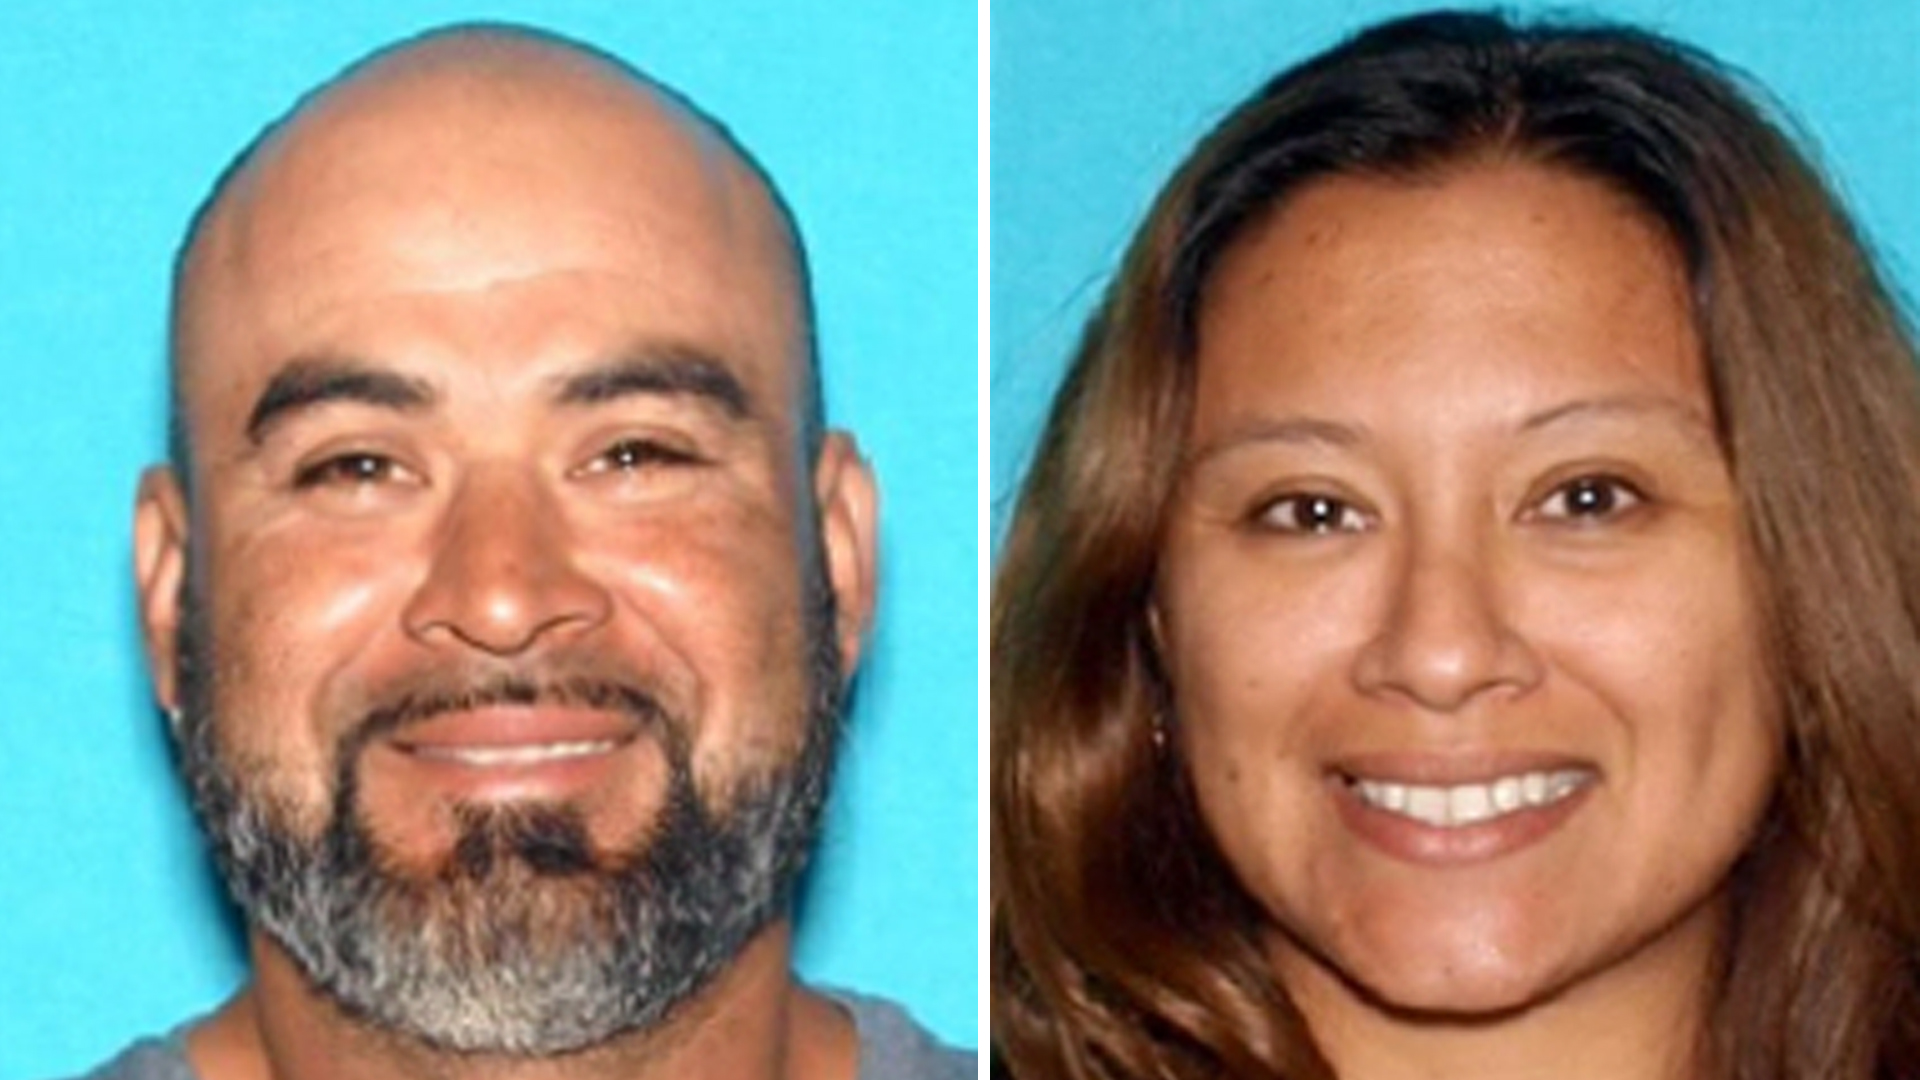 Roman Cerratos, 39, and Maricela Mercado, 40, are seen in undated photo provided by the Los Angeles County Sheriff's Department on April 18, 2019.